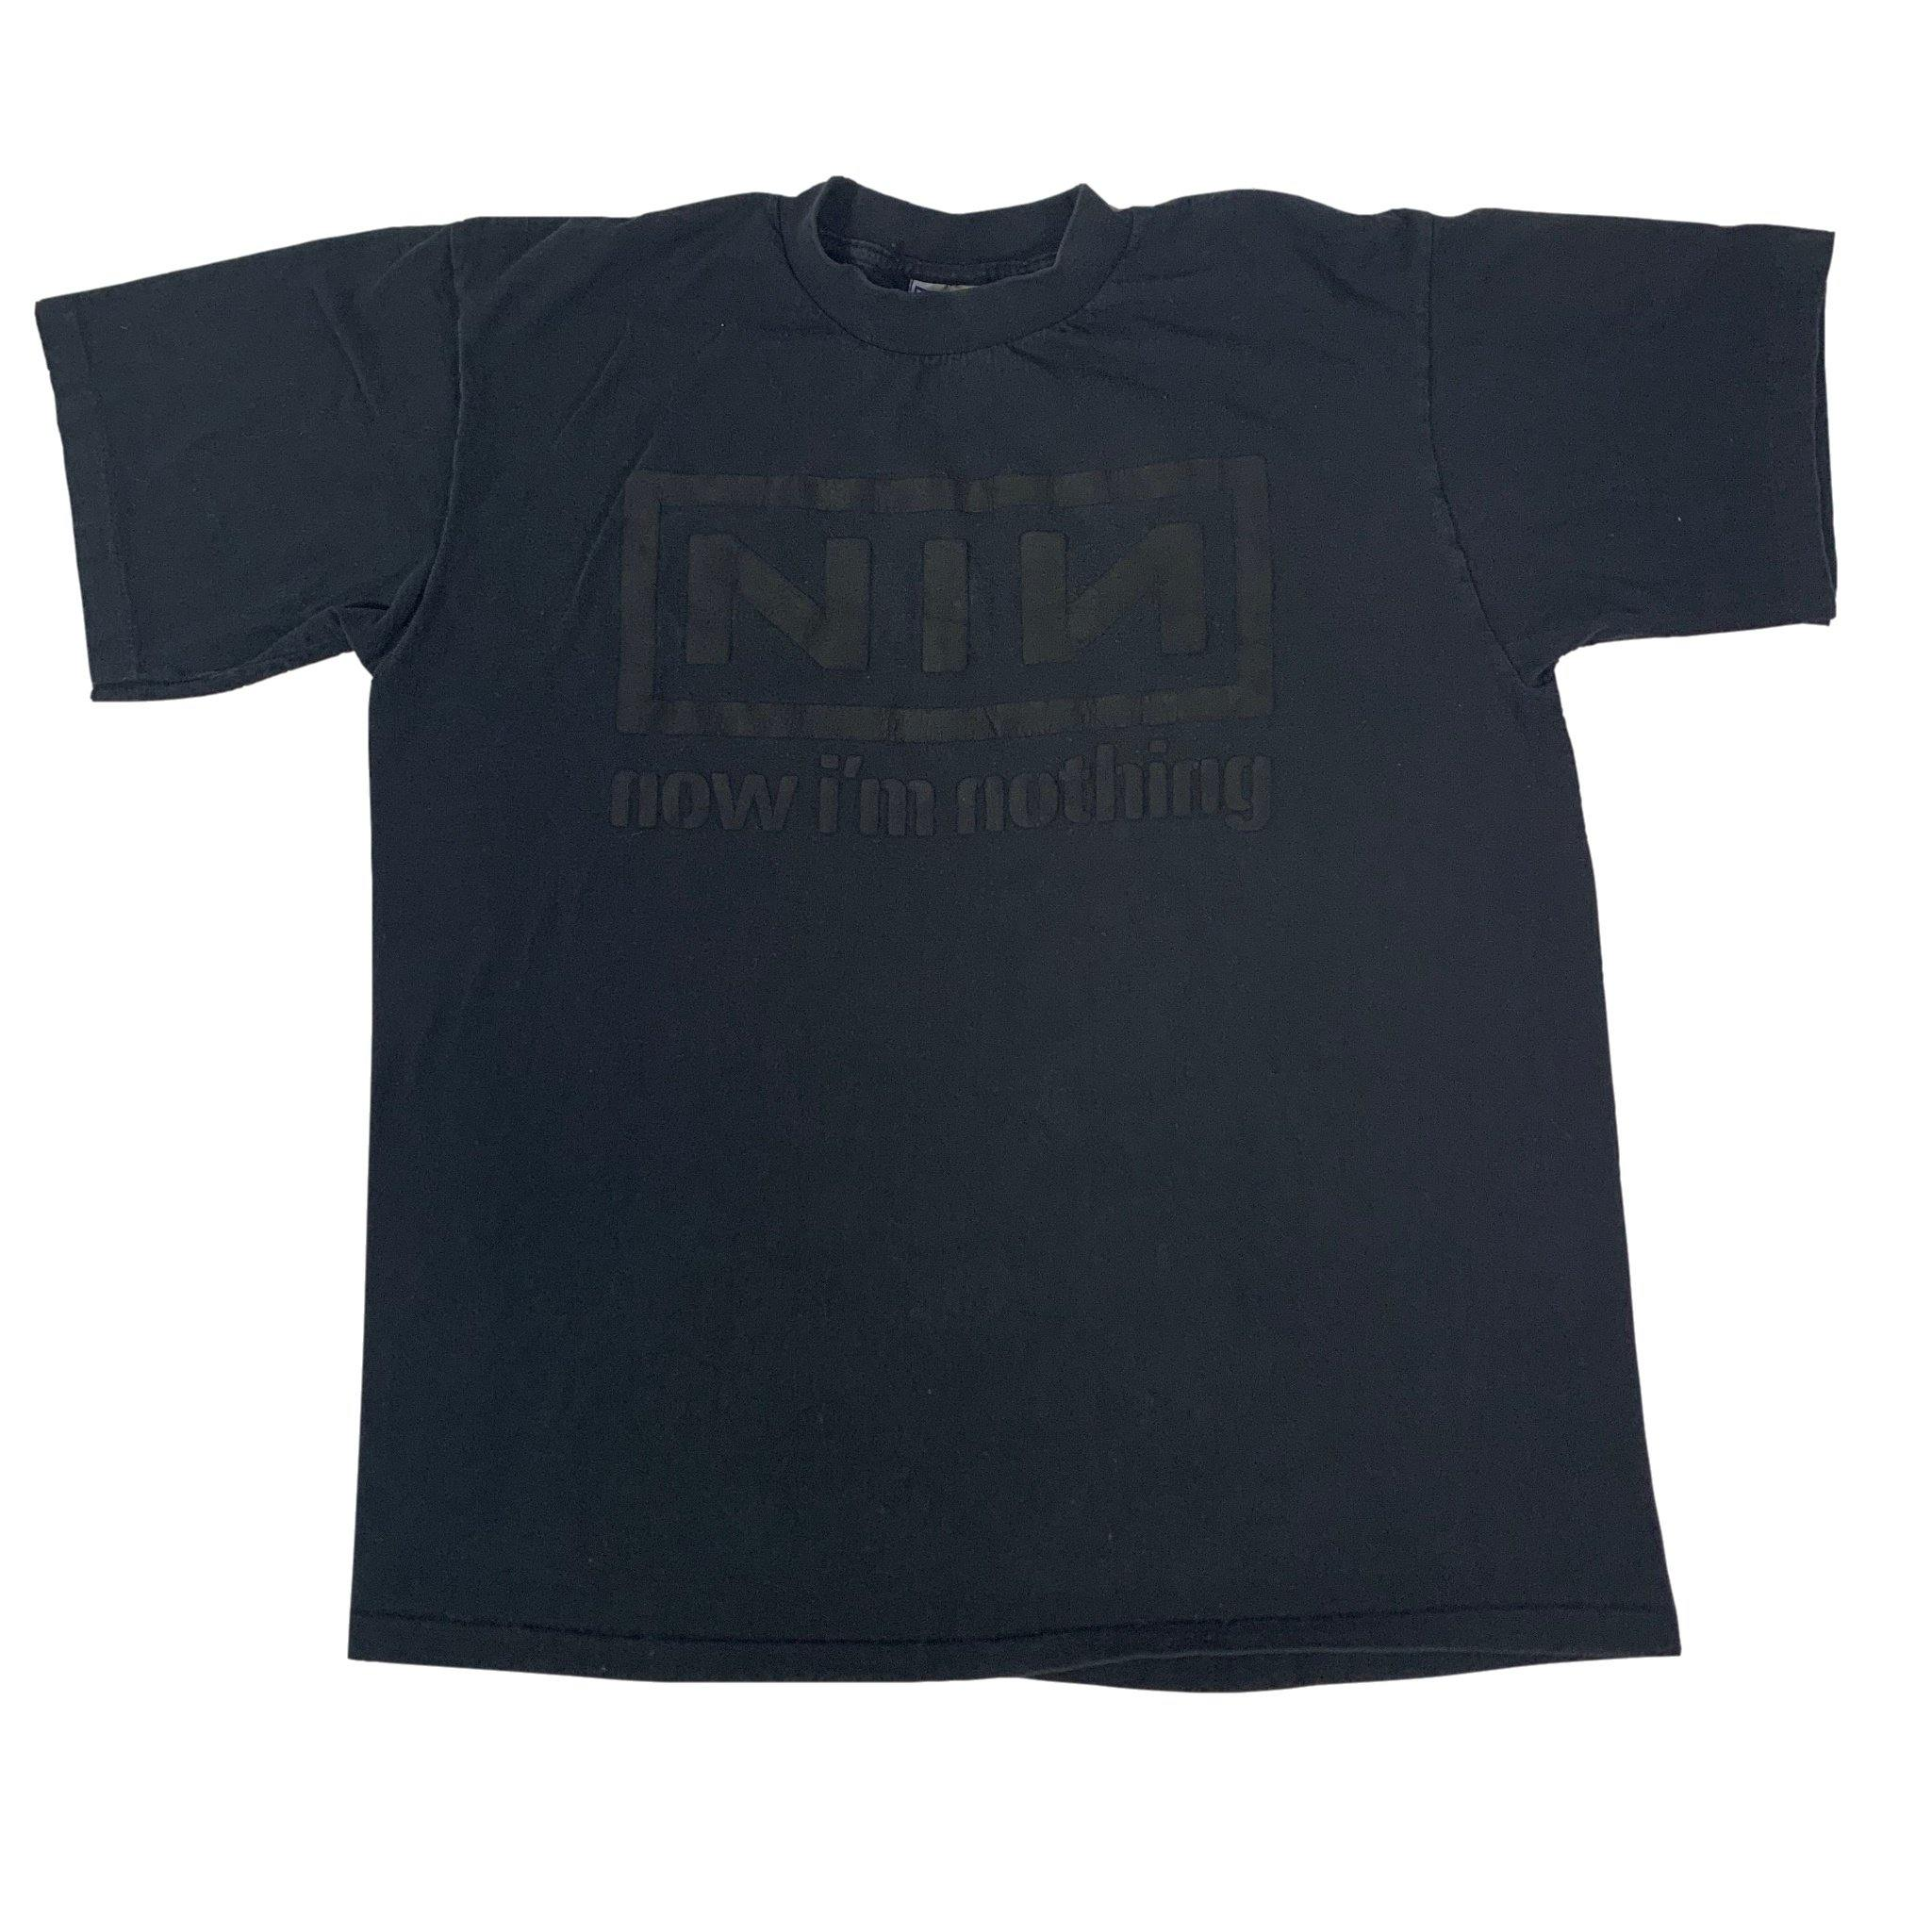 "Vintage Nine Inch Nails ""Nothing"" Puffy Ink T-Shirt"